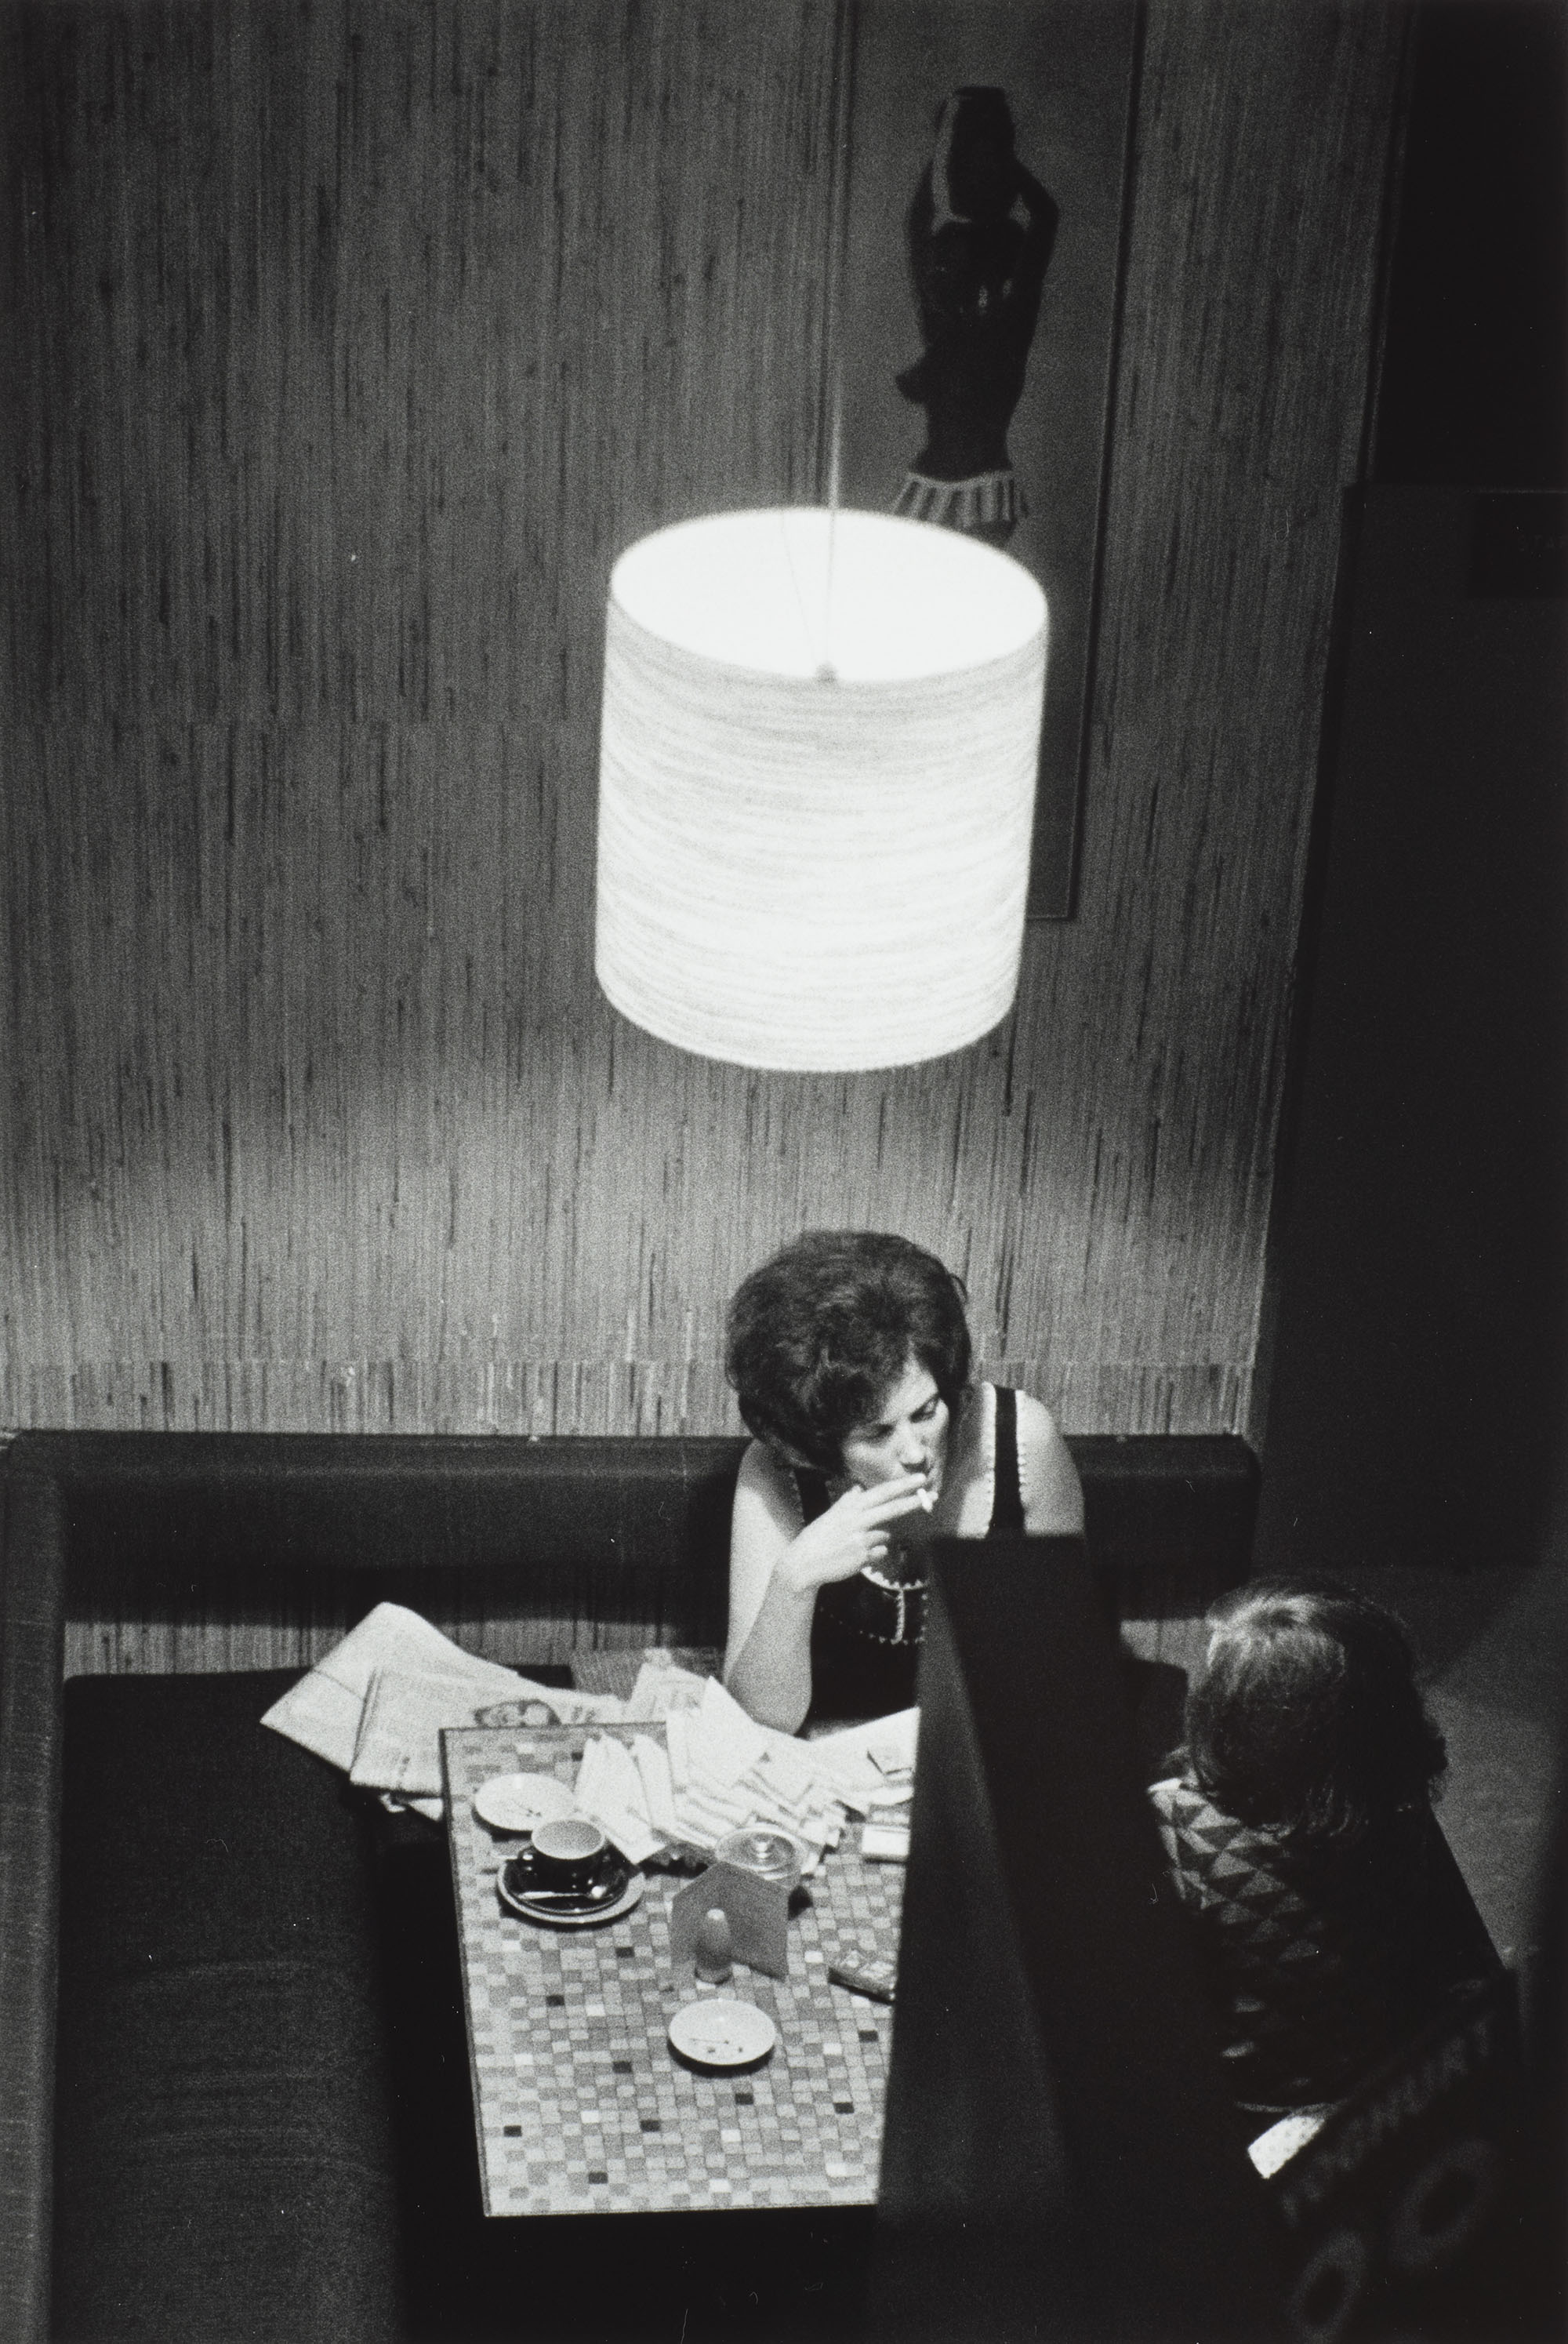 An overheard photo of two women sitting at a table with a pile of letters